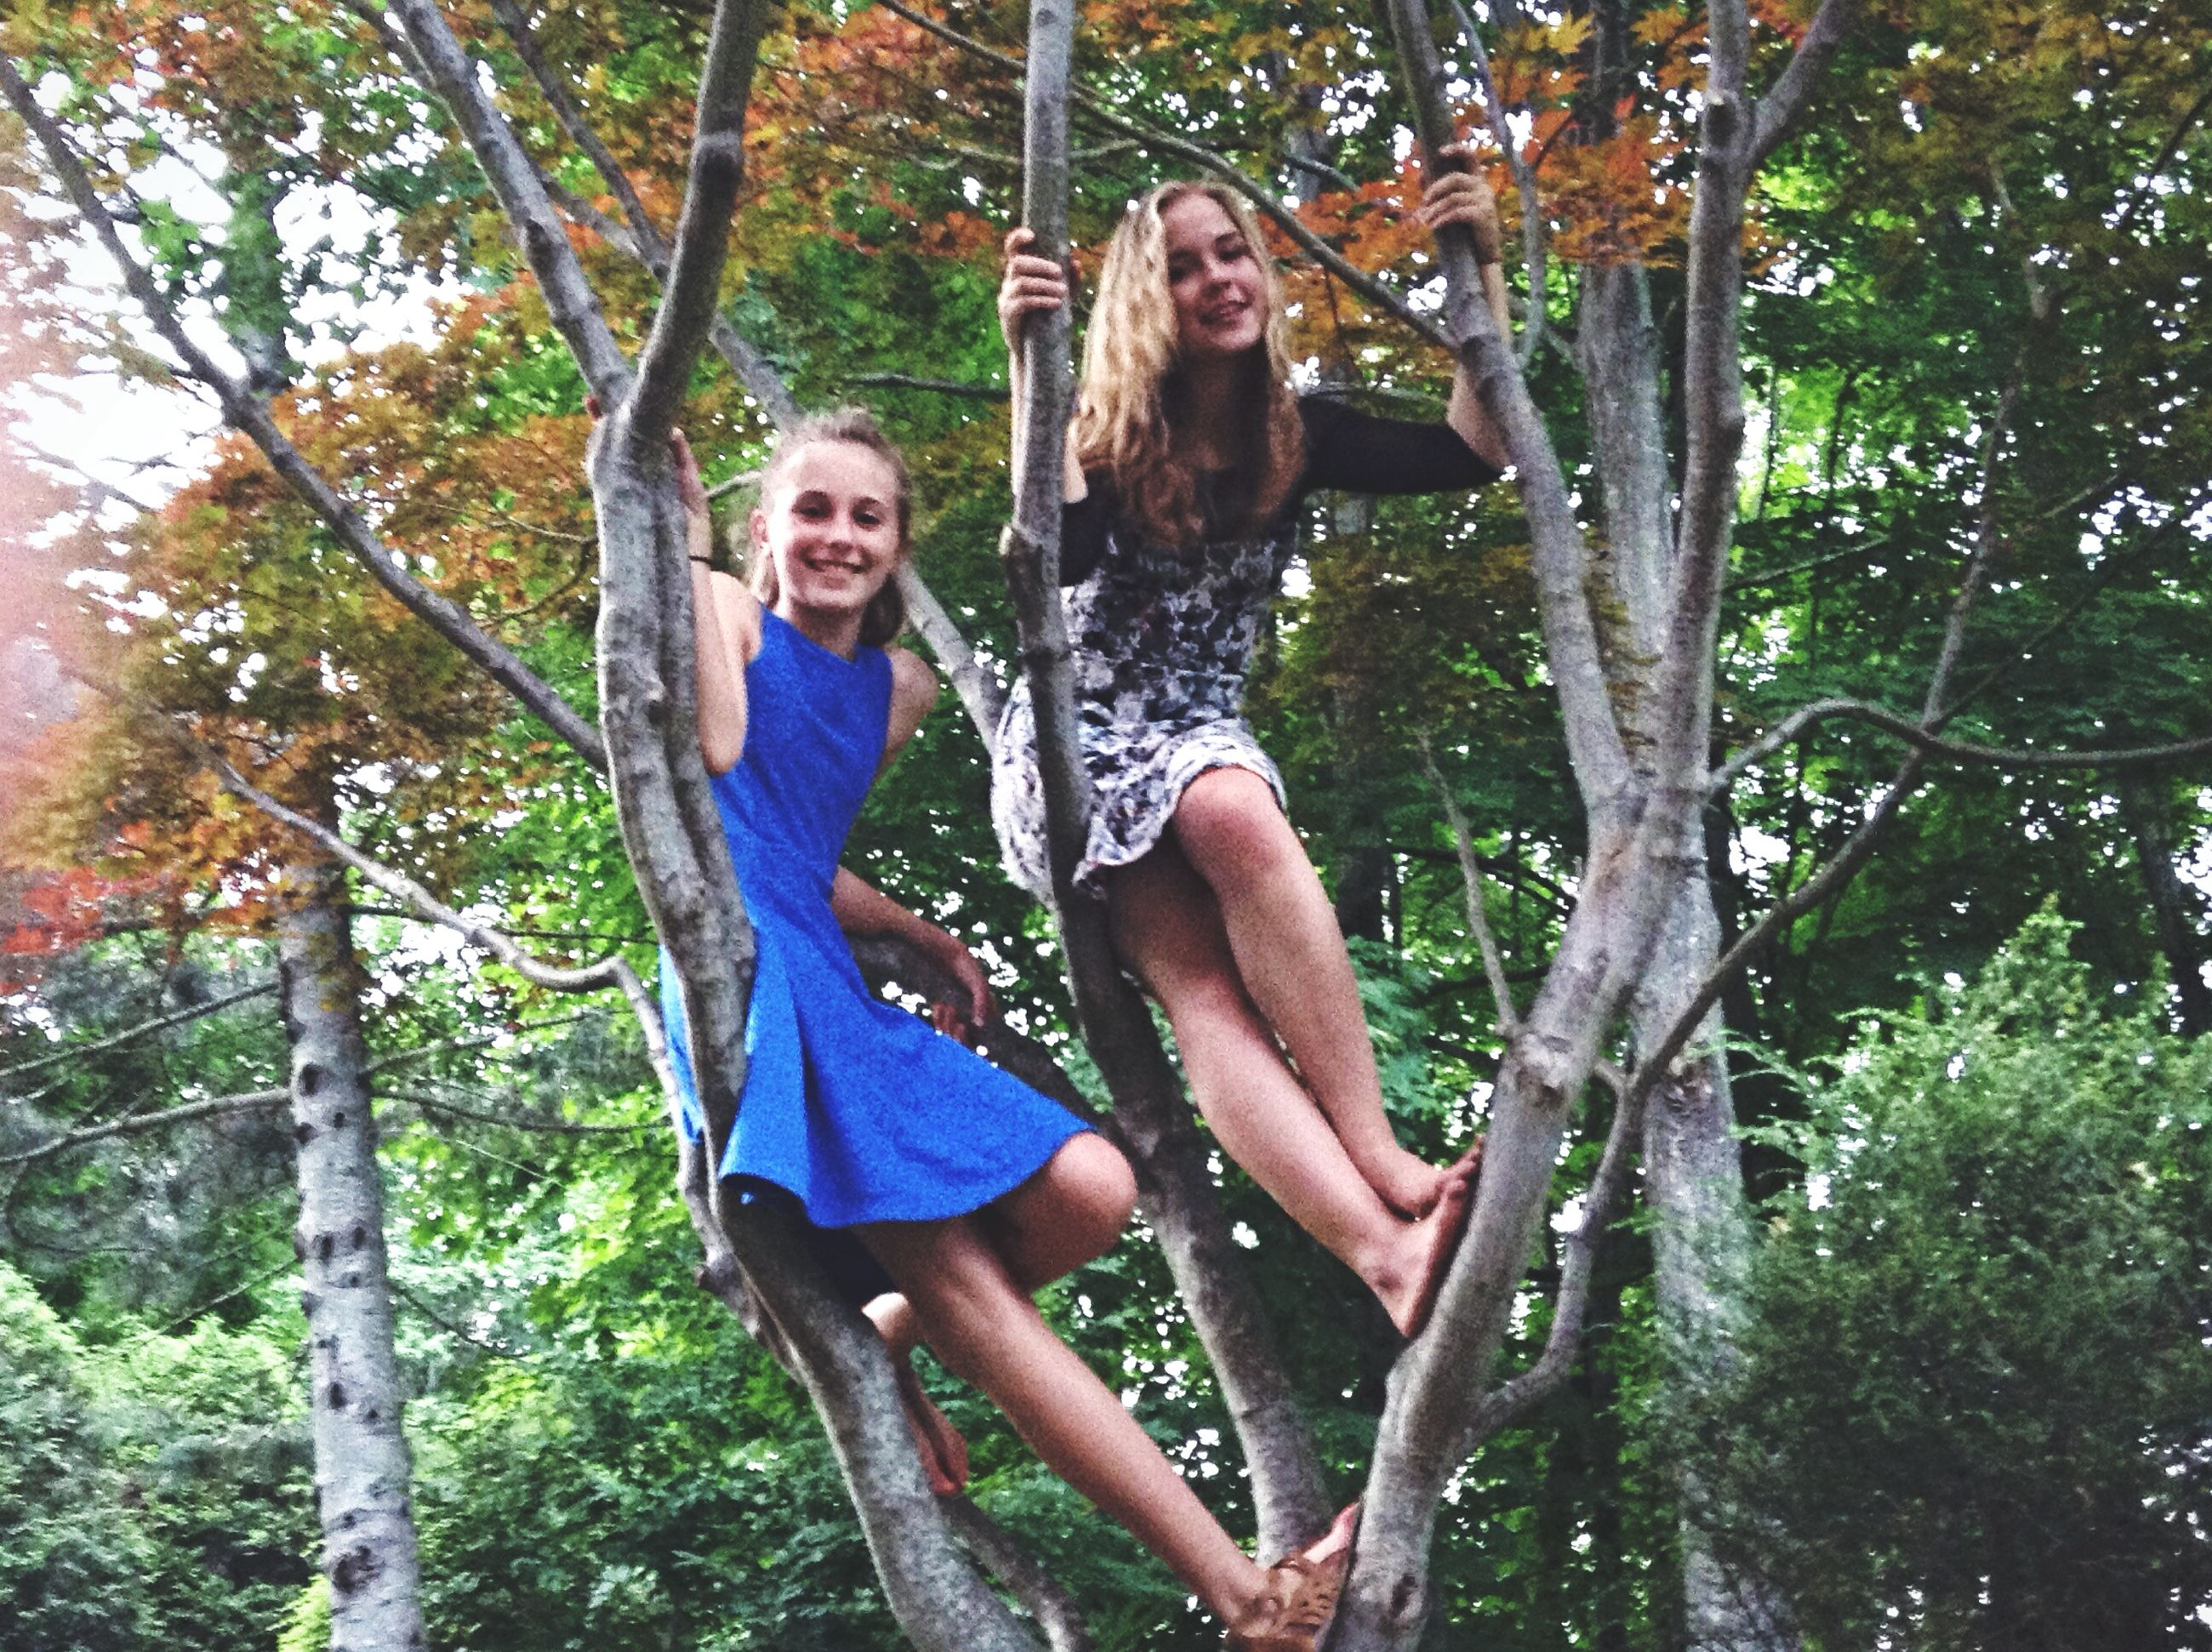 tree, lifestyles, leisure activity, young adult, person, looking at camera, casual clothing, young women, portrait, smiling, full length, happiness, front view, standing, enjoyment, fun, three quarter length, forest